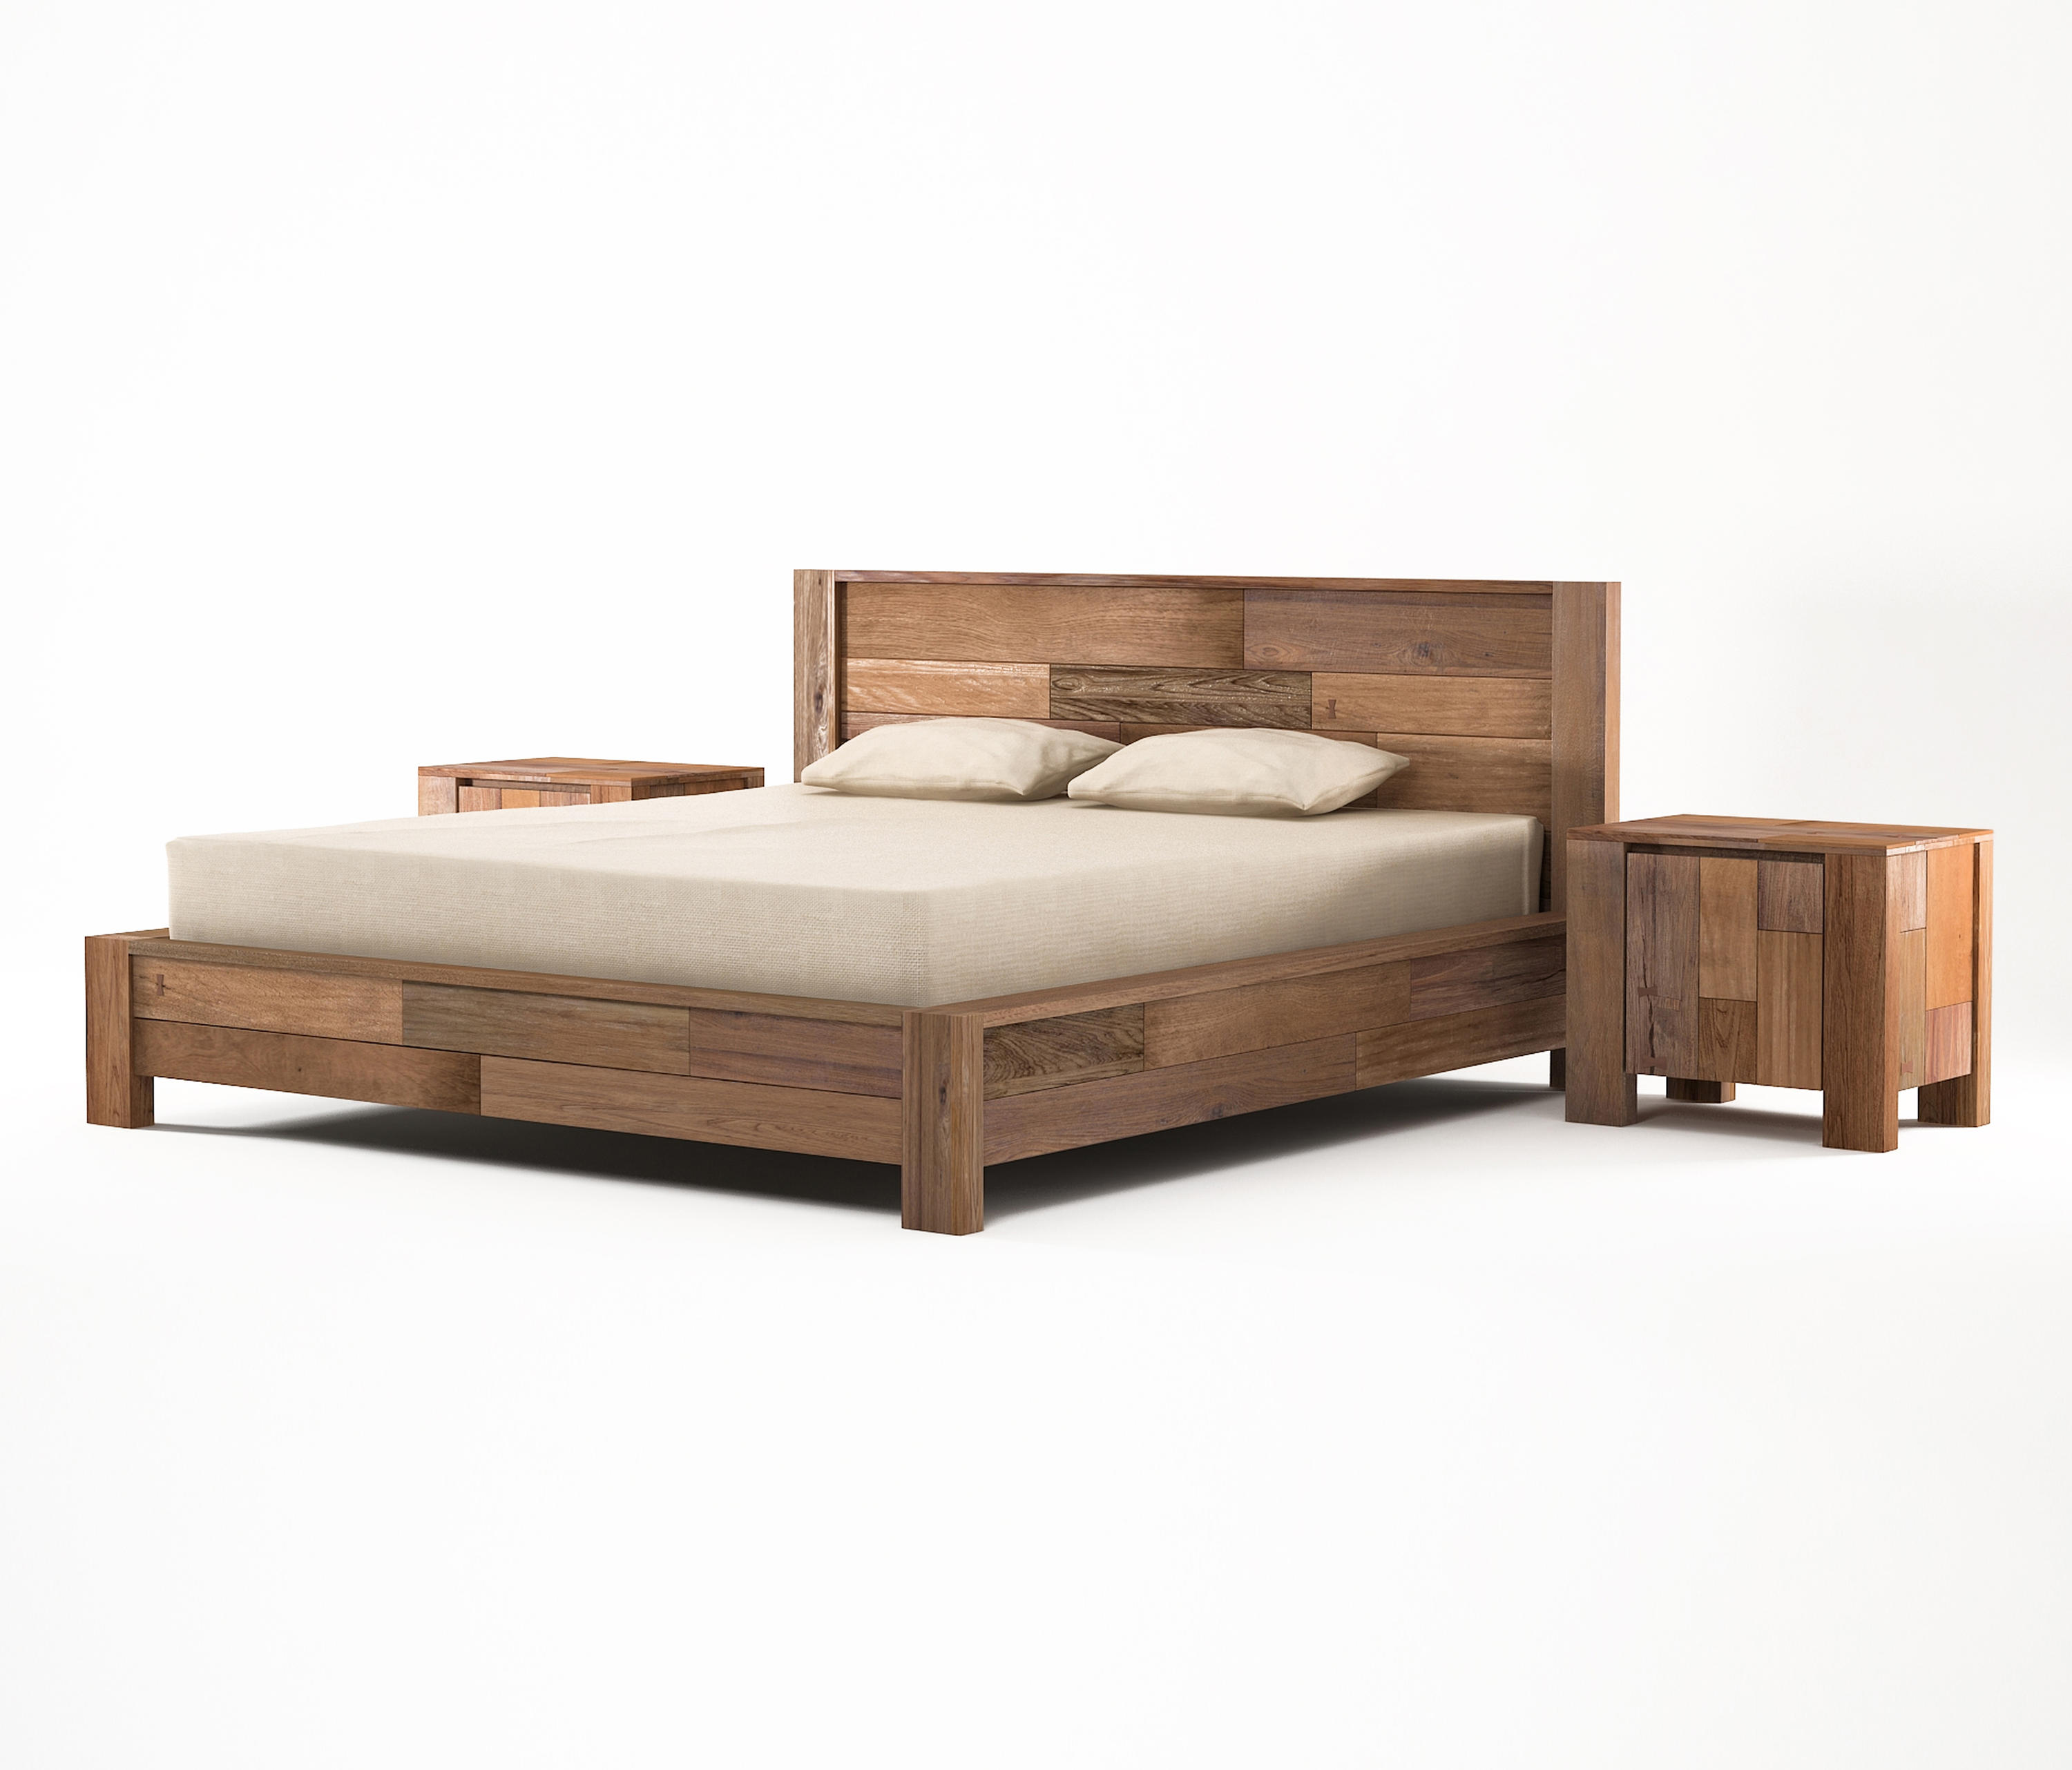 Double Bed 100 Organik European King Size Bed Beds From Karpenter Architonic